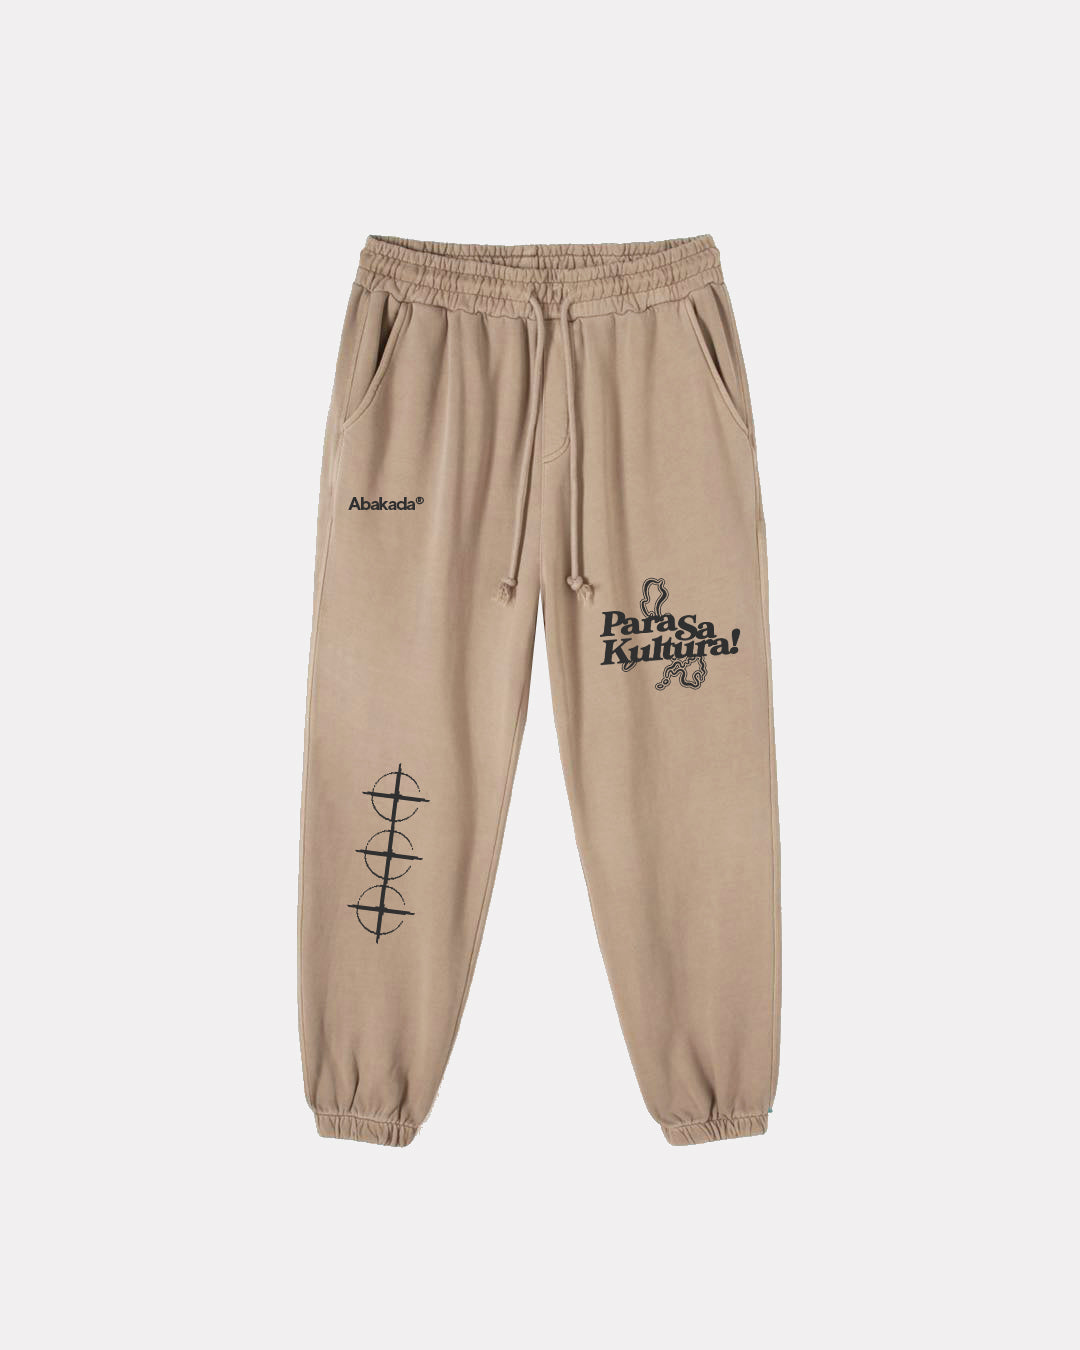 Abakada® Earth Sweatpants (Sandstone)